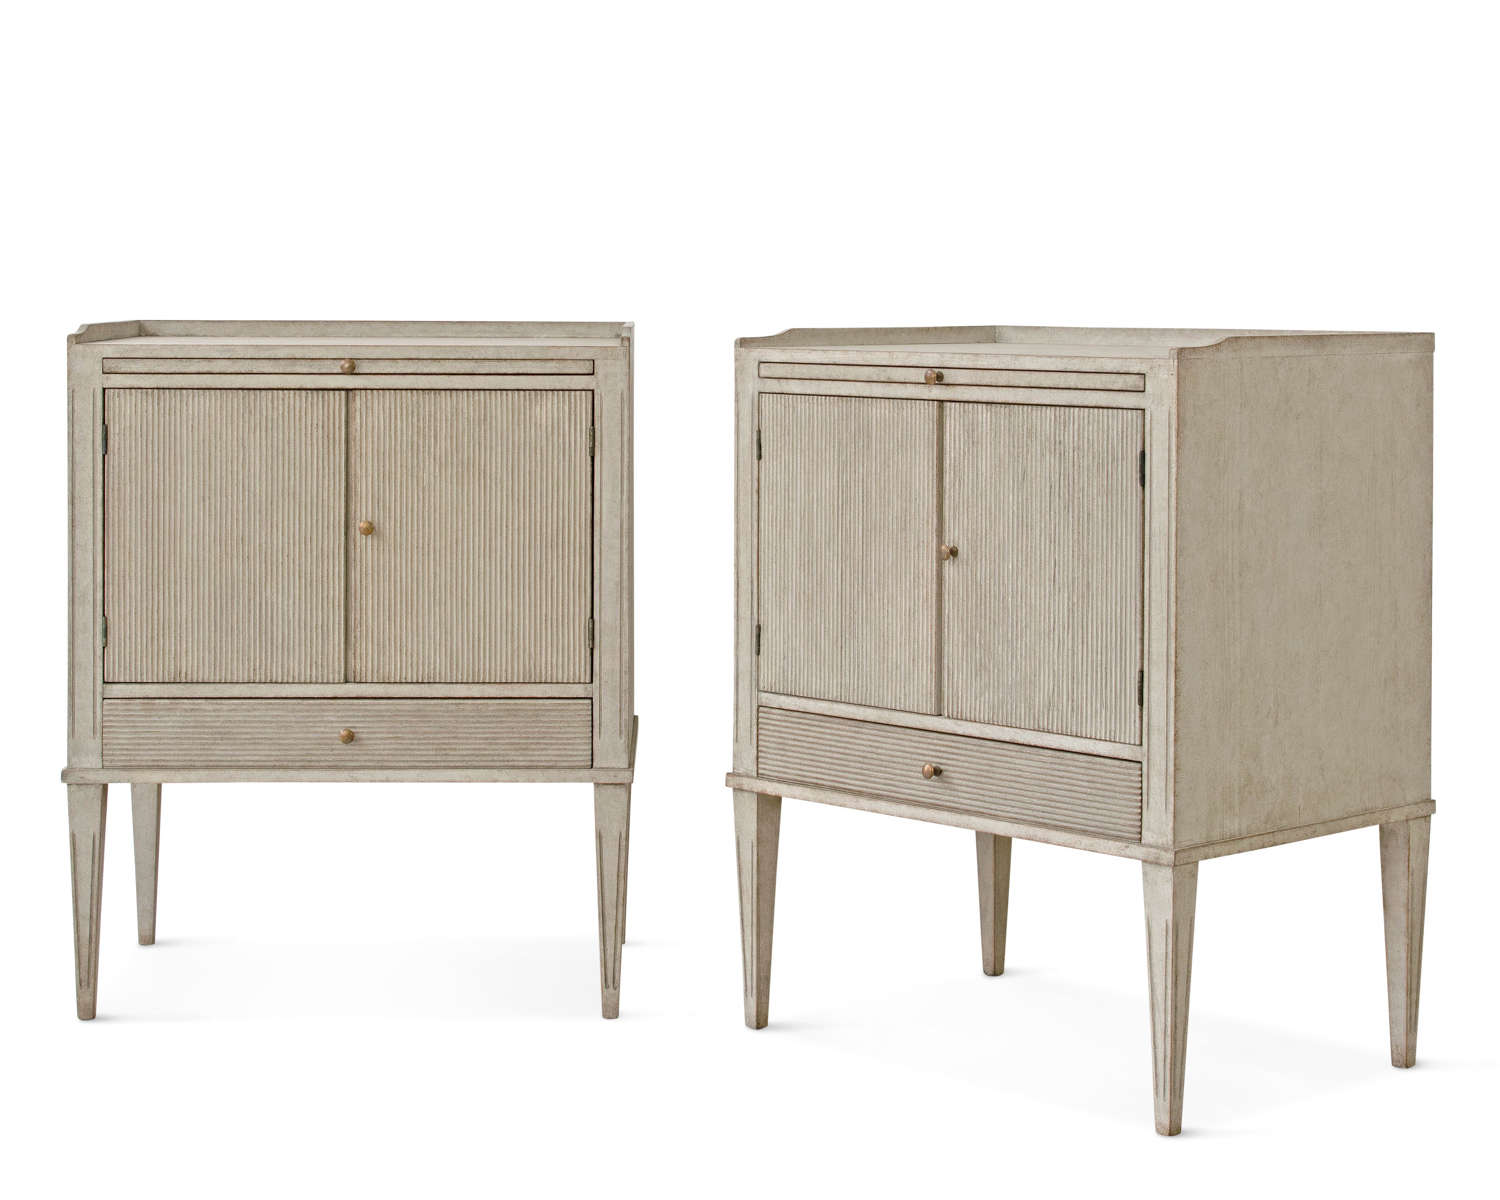 GRAND LOTTA BEDSIDE CABINETS